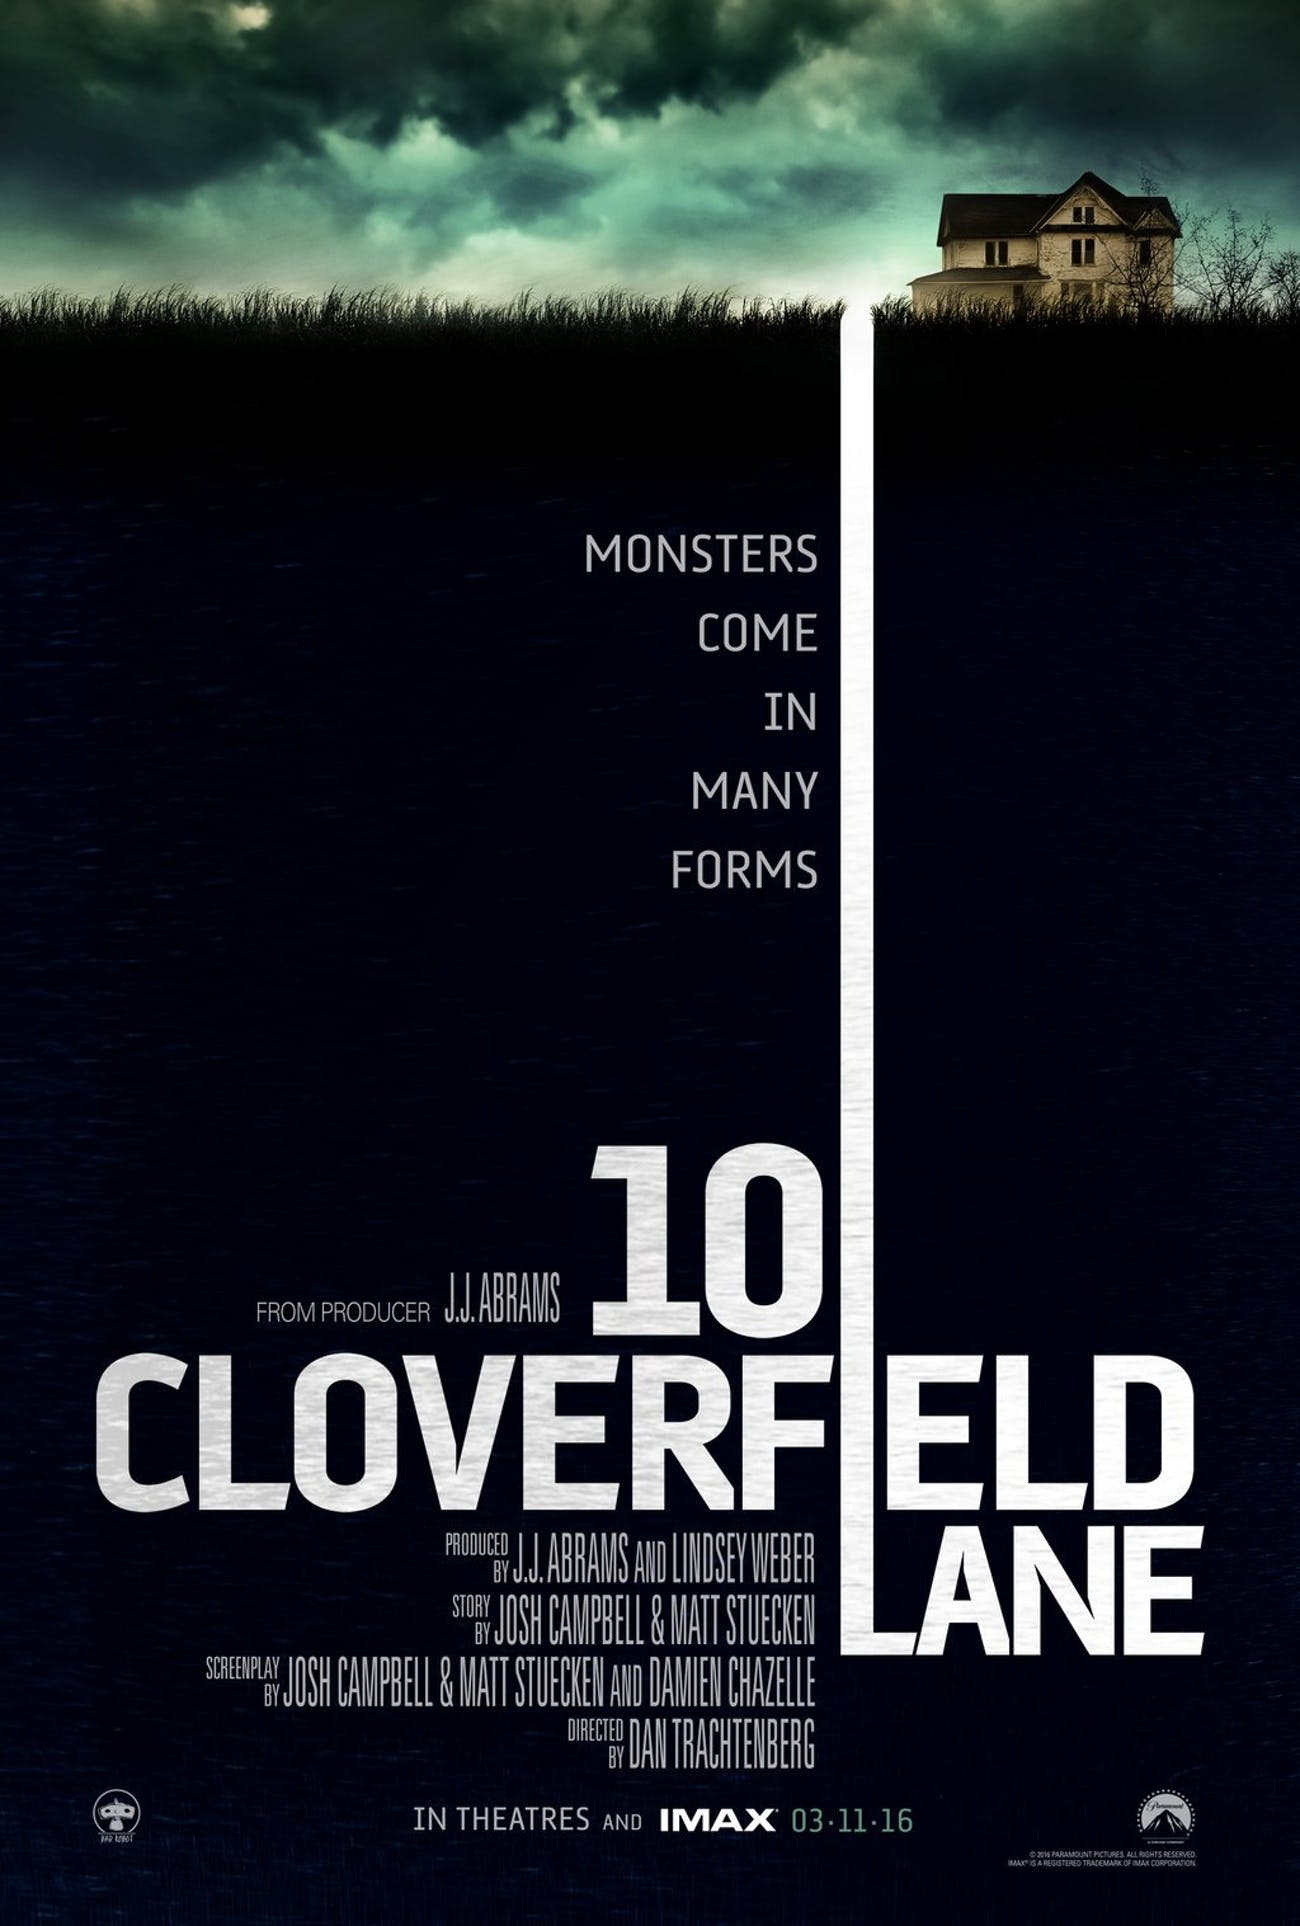 10 Cloverfield Lane' Already Has Spawned These 5 Weird